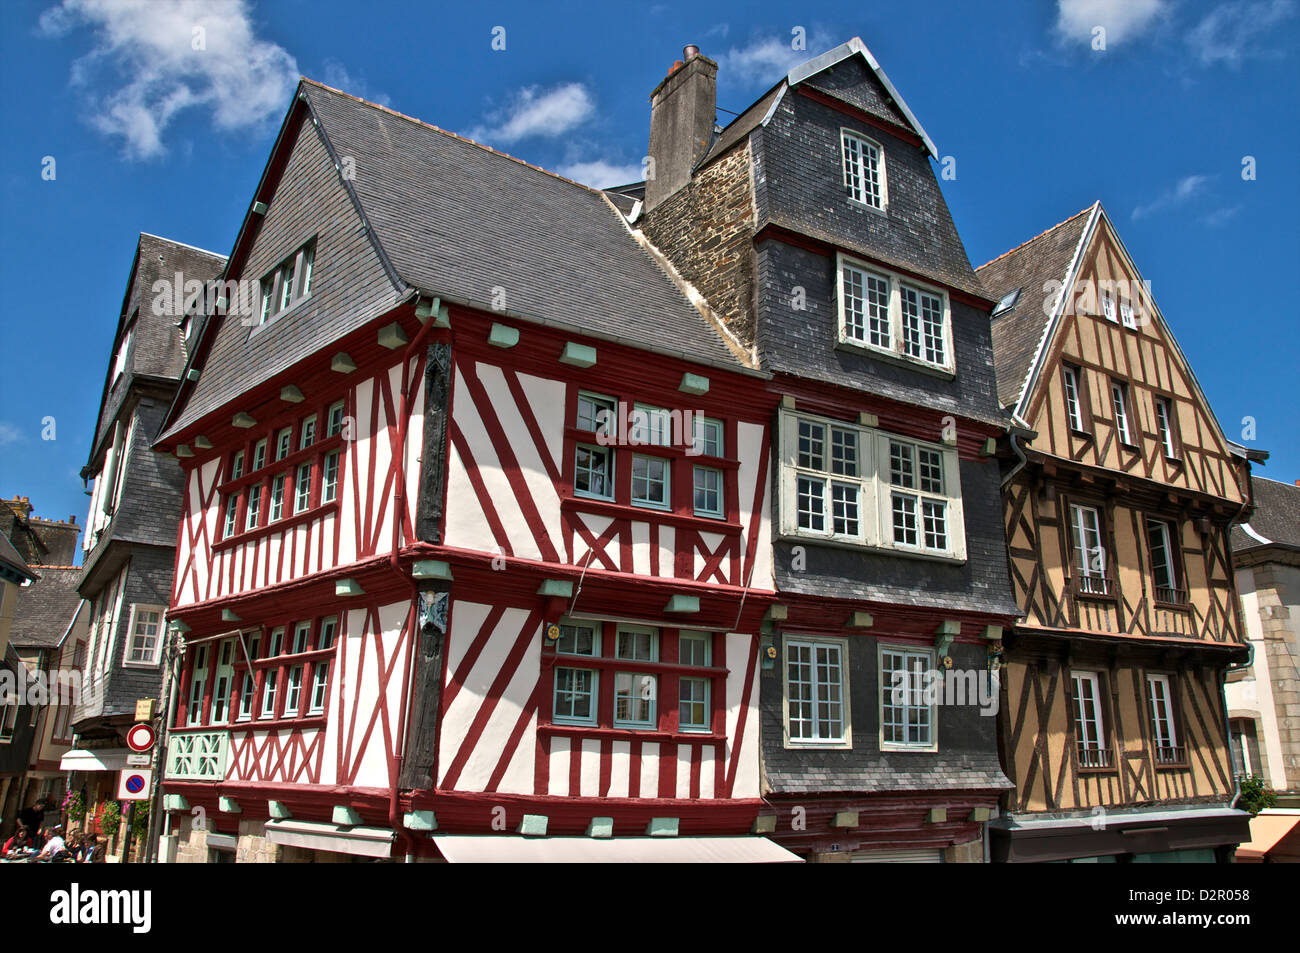 Medieval half timbered houses, old town, Morlaix, Finistere, Brittany, France, Europe Stock Photo